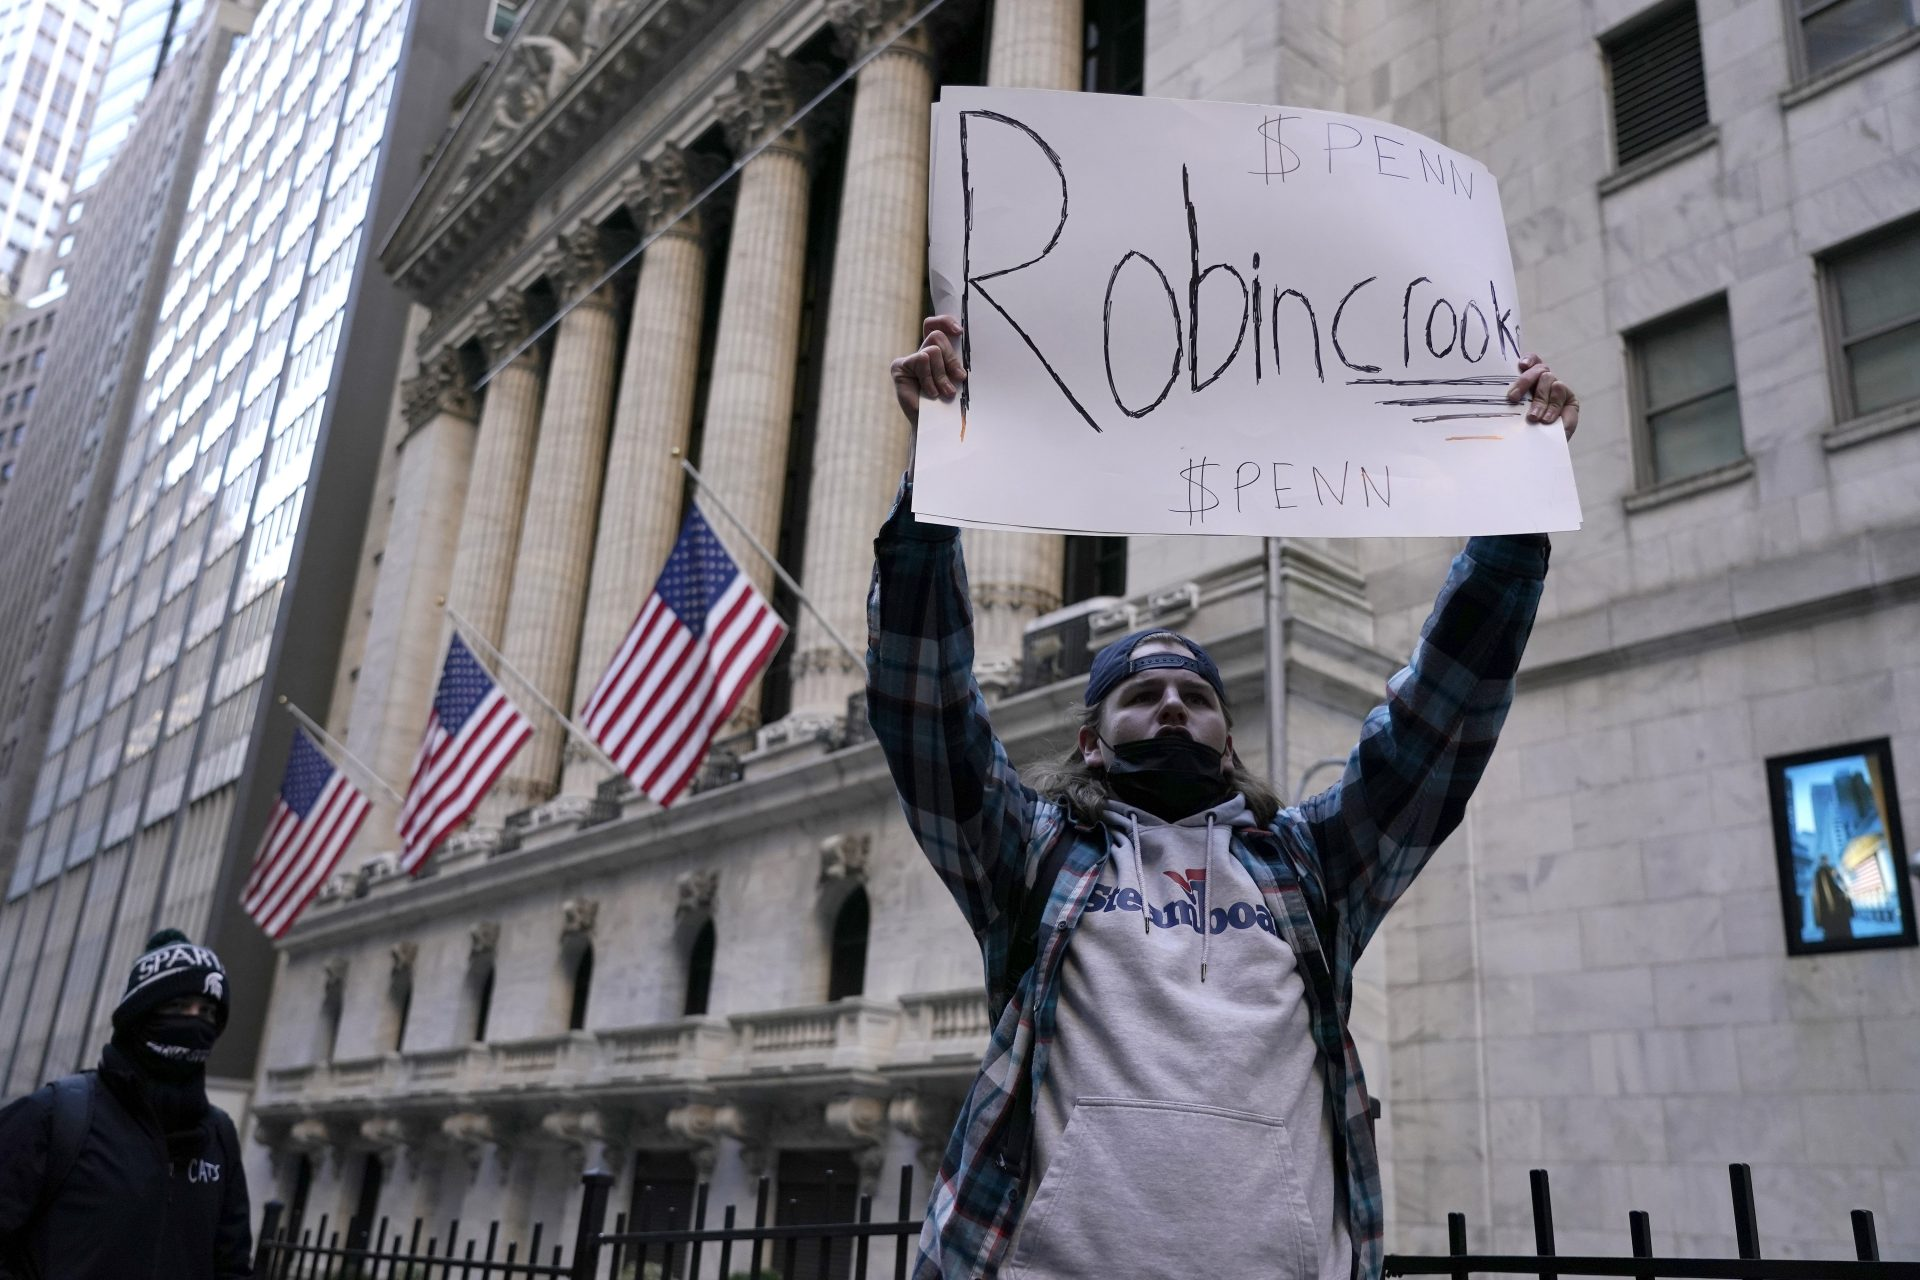 Mandatory Credit: Photo by John Lamparski/SOPA Images/Shutterstock (11734562g)A demonstrator holds up a placard saying Robin Crook in front of the New York Stock Exchange.